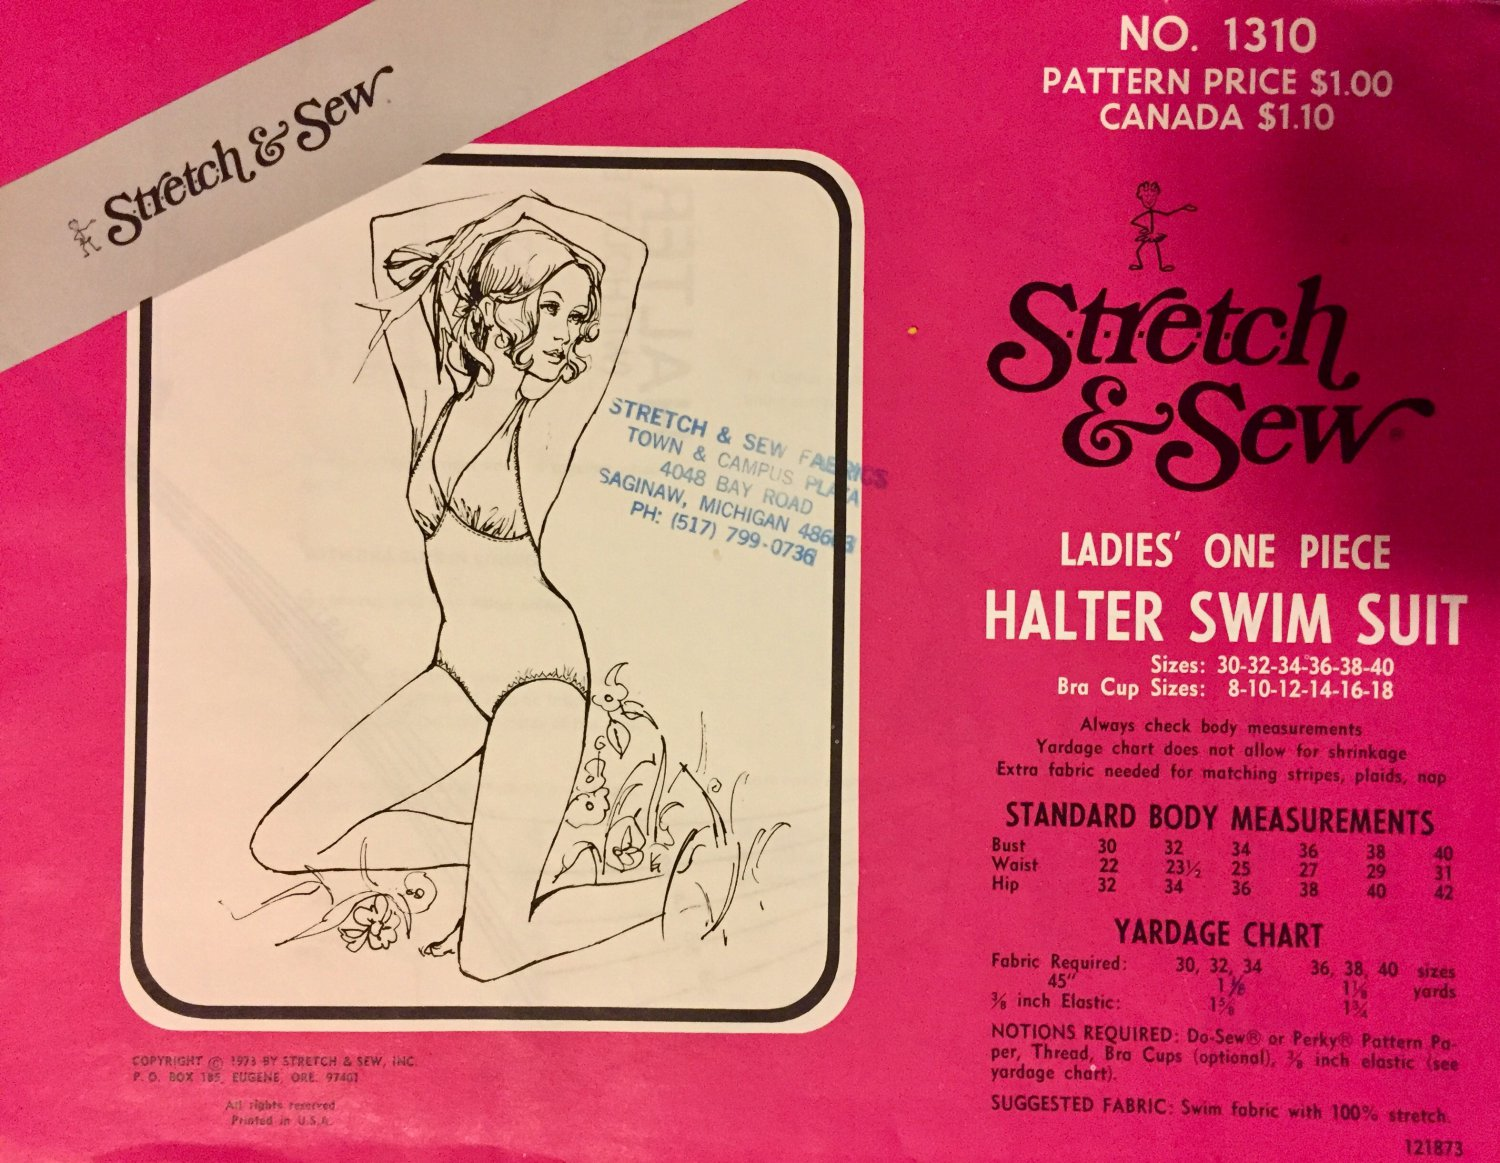 Vintage 1970s Halter Swim Suit Pattern 1310 by Ann Person 70s Bathing Suit Size 30 32 34 36 38 40